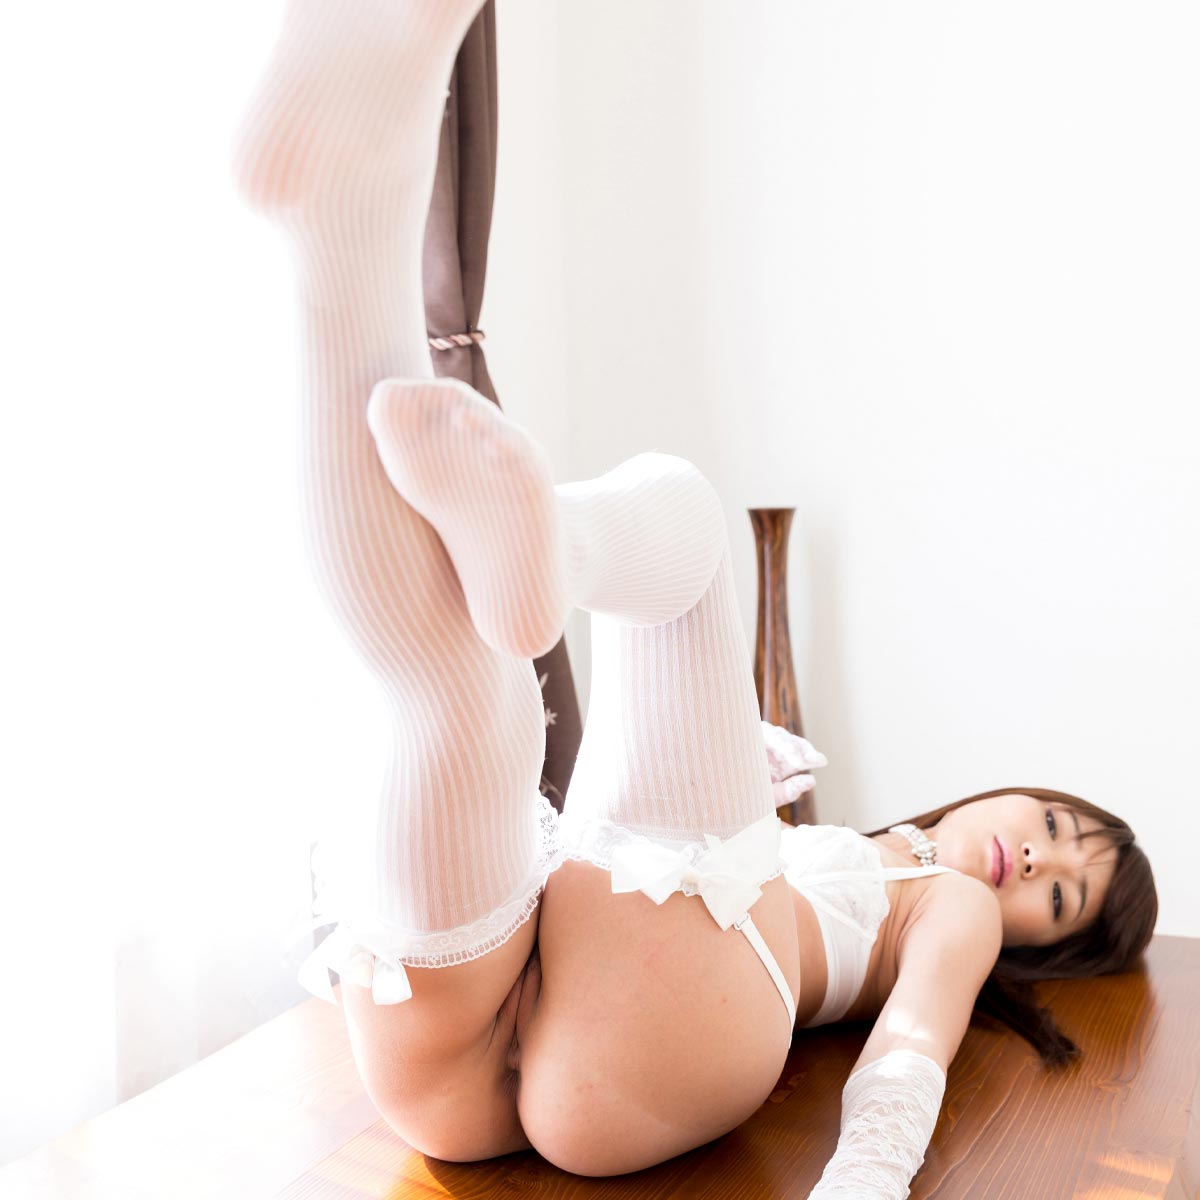 LegsJapan, uncensored Japanese Leg and Foot-Fetish videos. Nude girls giving Footjob, sucking toes, fucking with long legs and beautiful feet.